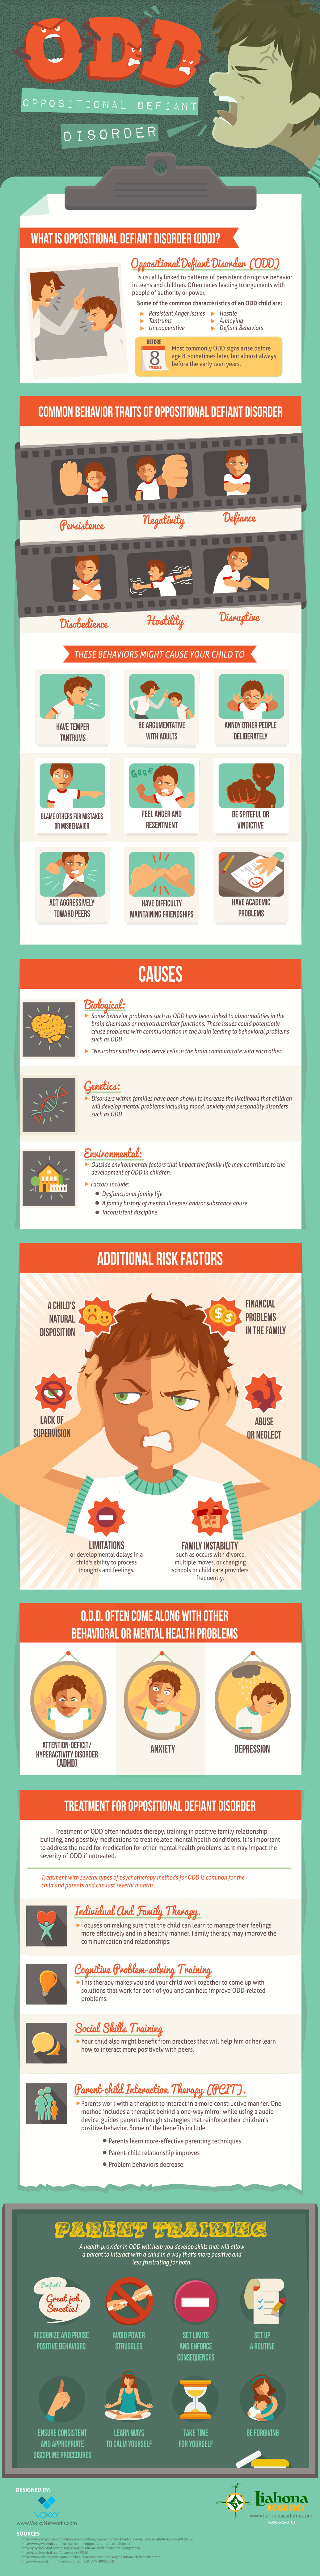 Oppositional Defiant Disorder - Infographic